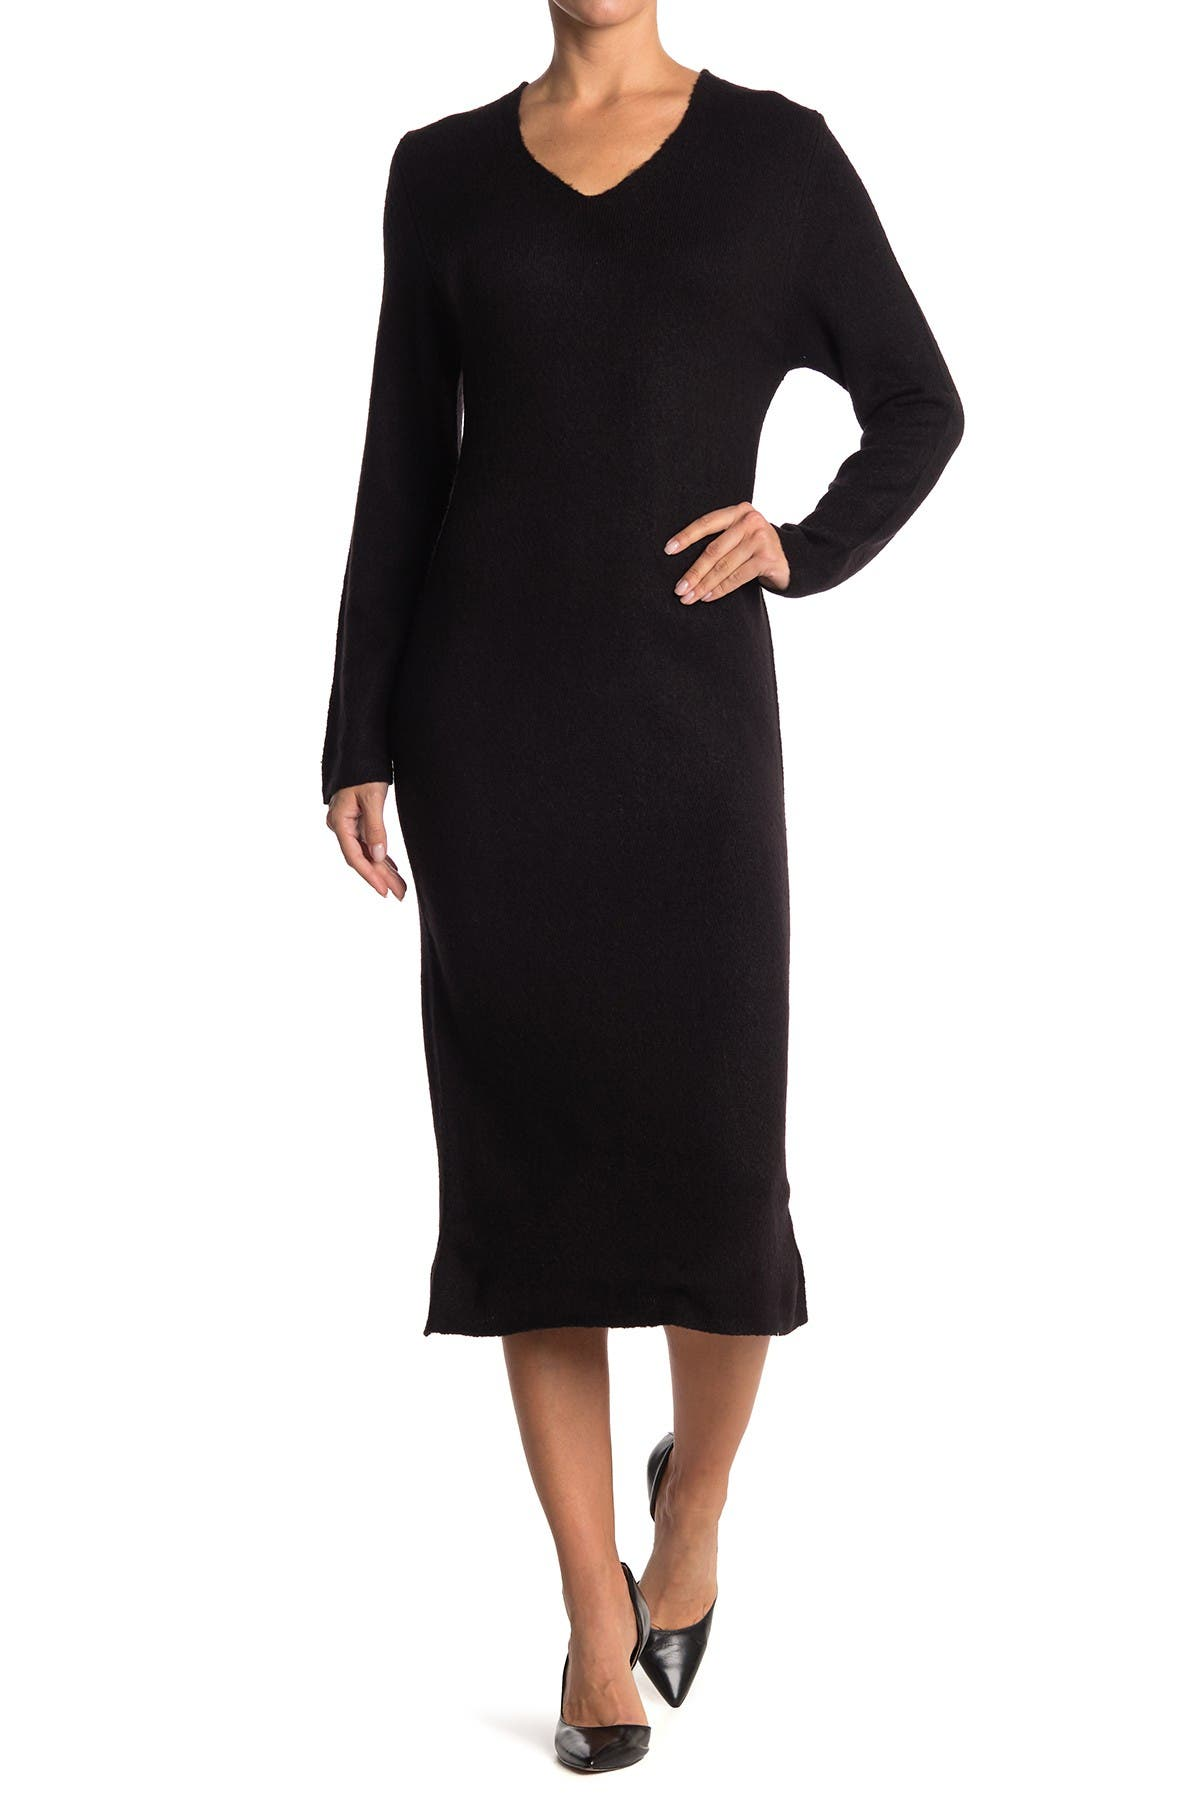 Image of Cloth By Design Cozy Yarn V-Neck Sweater Dress